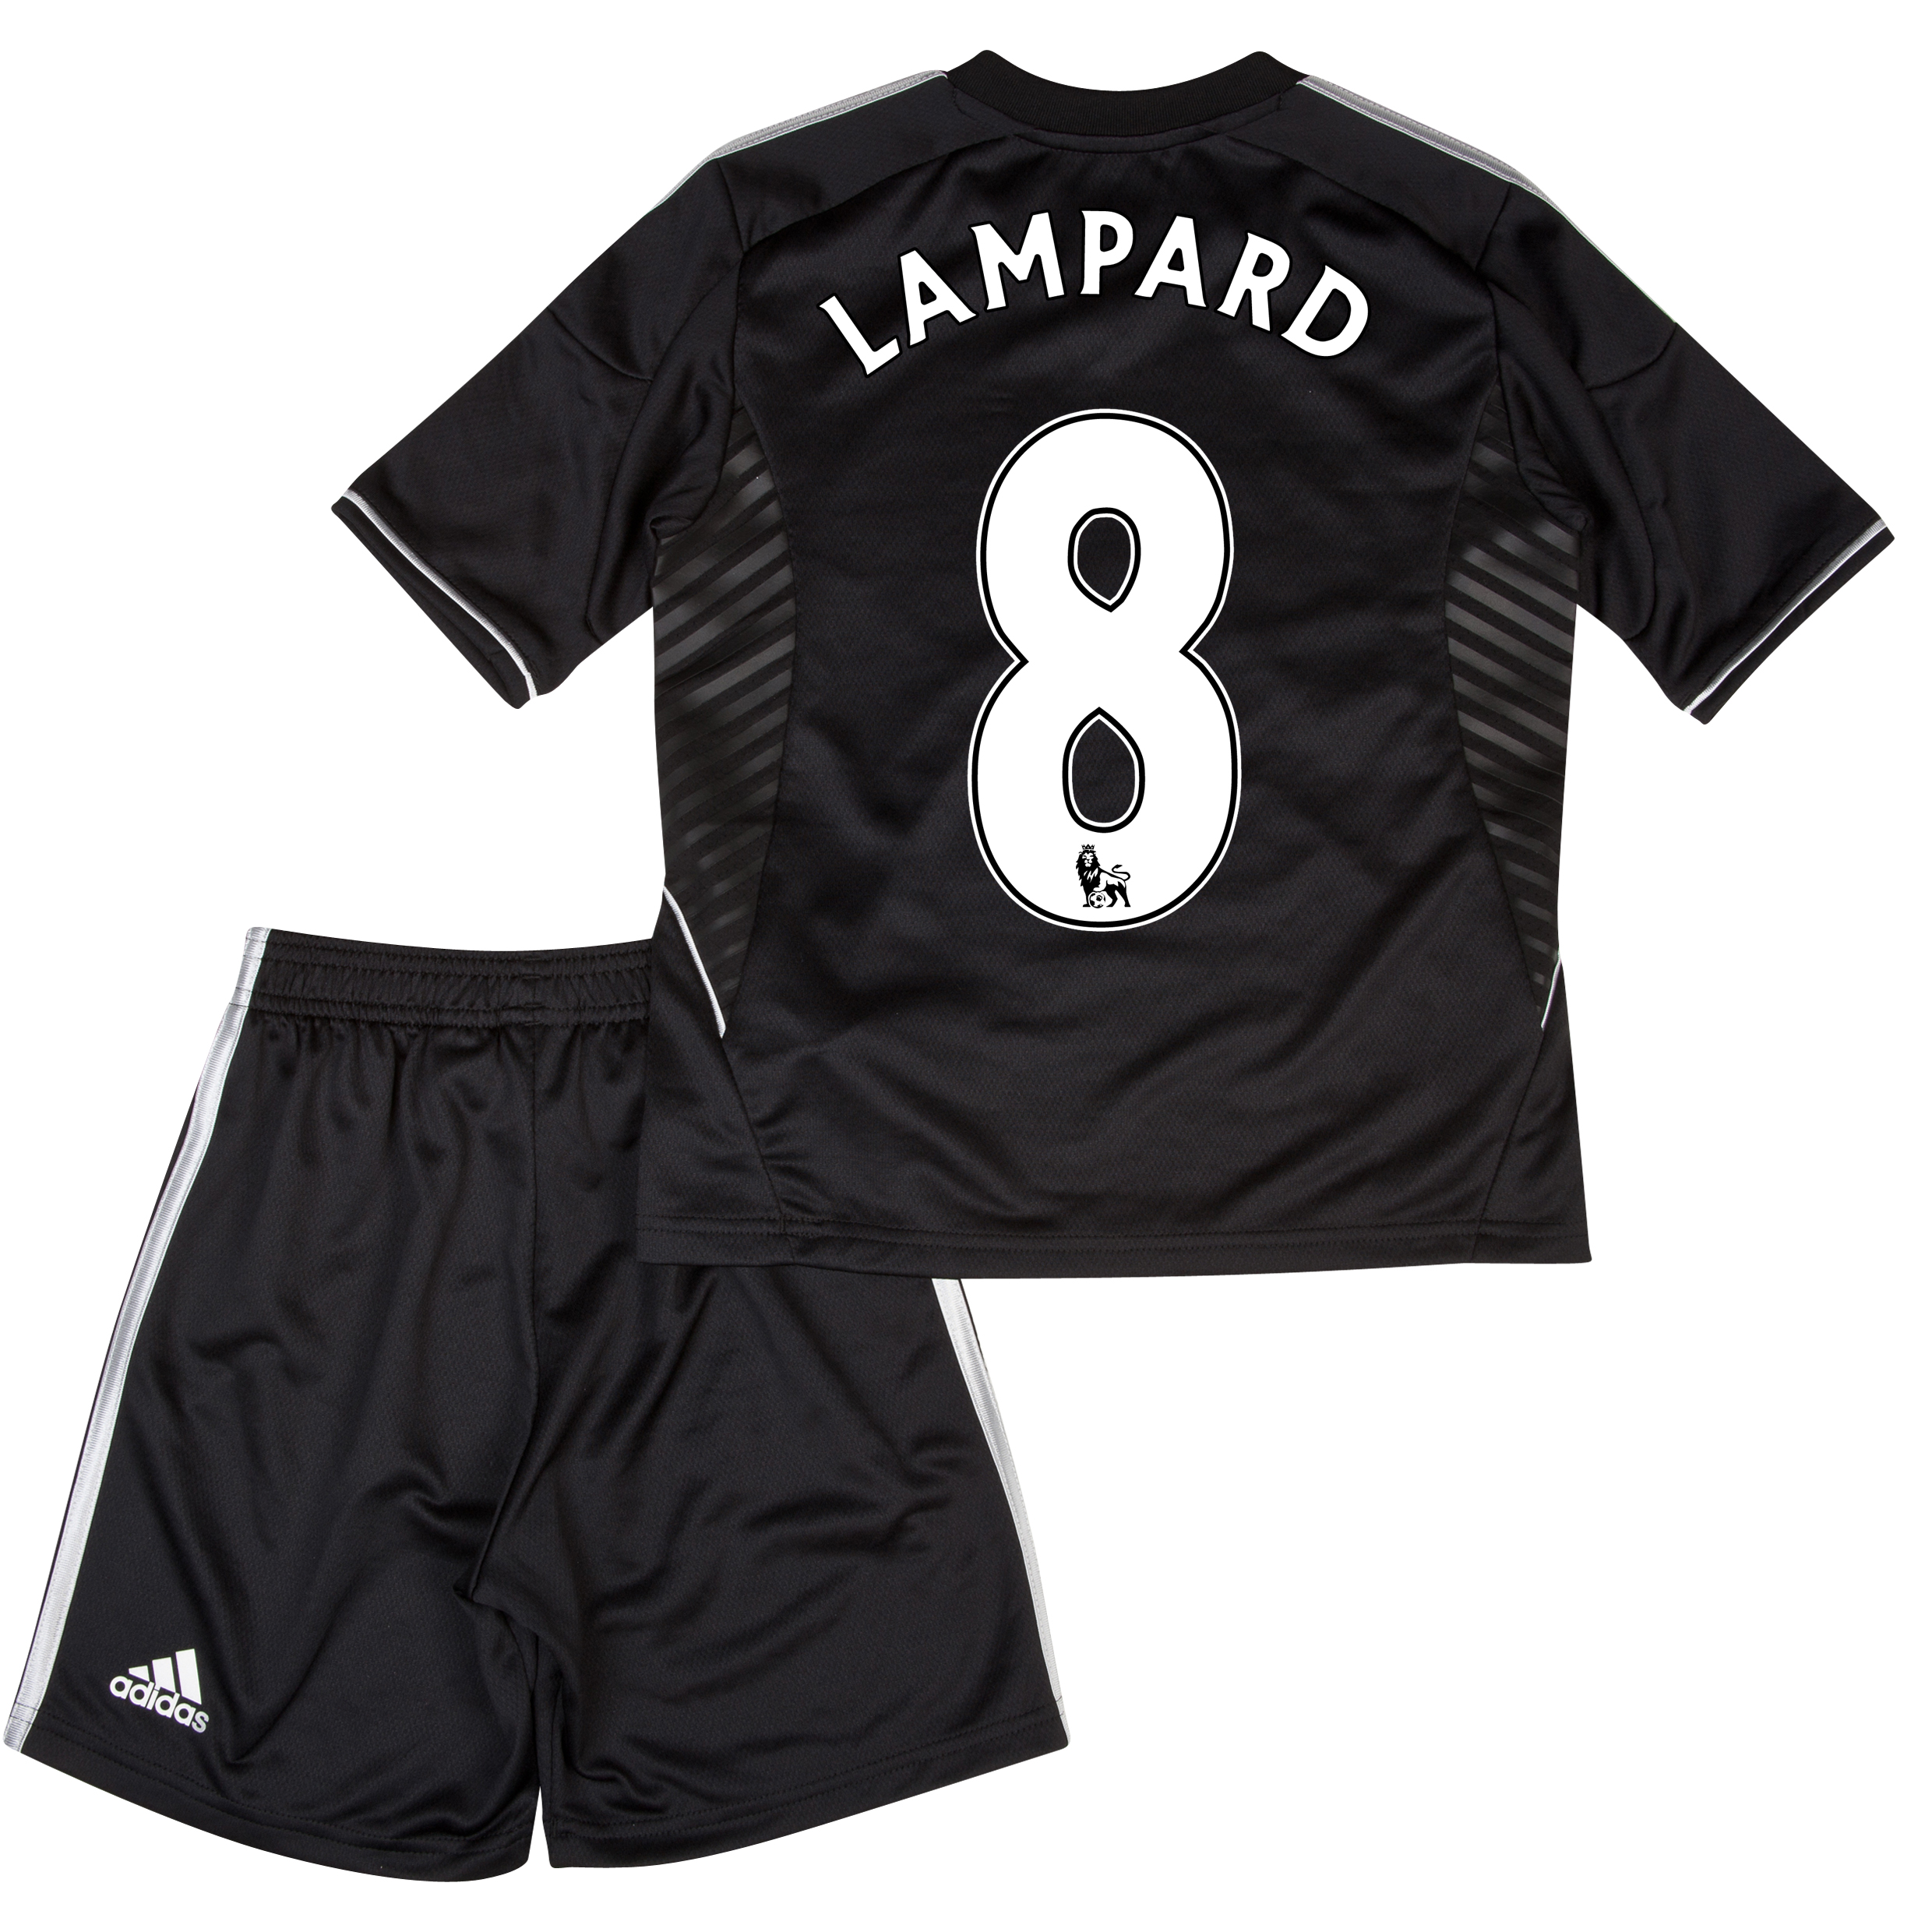 Chelsea Third Mini Kit 2013/14 with Lampard 8 printing